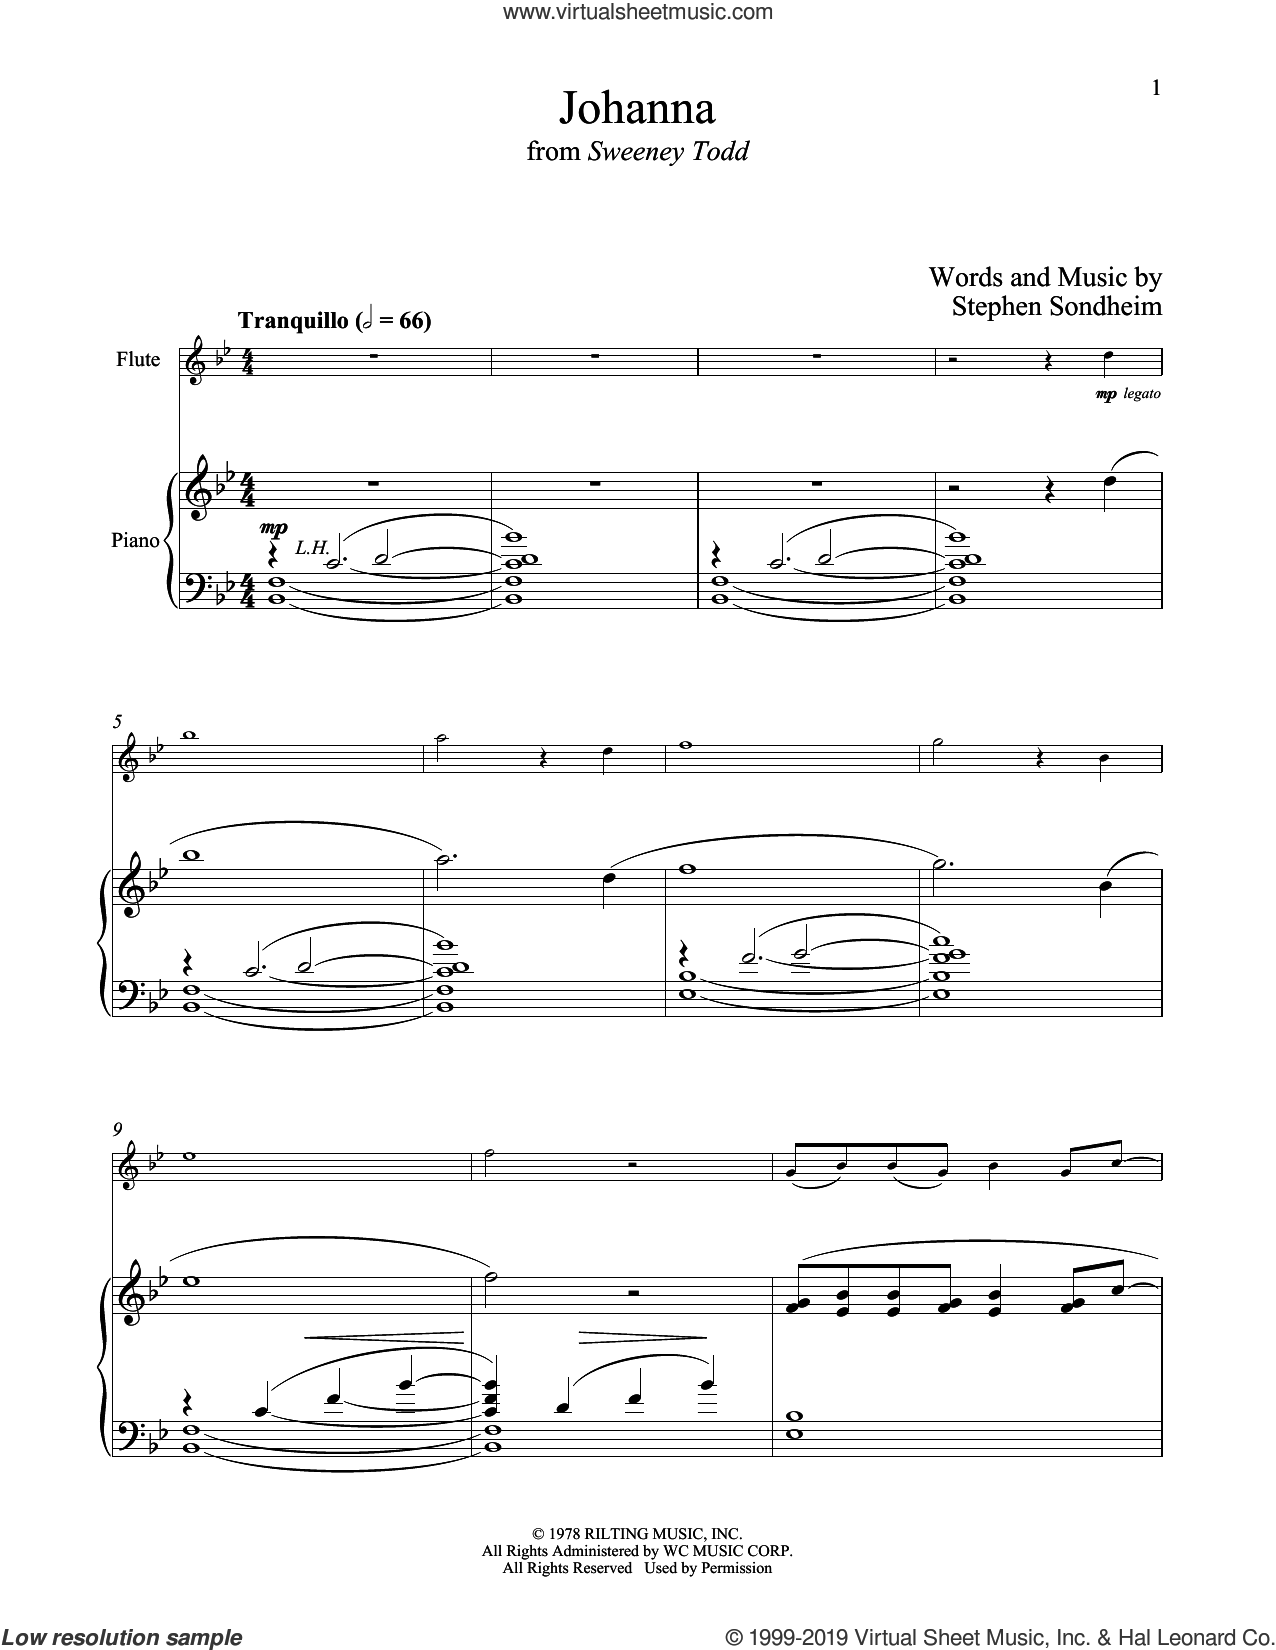 Johanna (from Sweeney Todd) sheet music for flute and piano by Stephen Sondheim, intermediate skill level